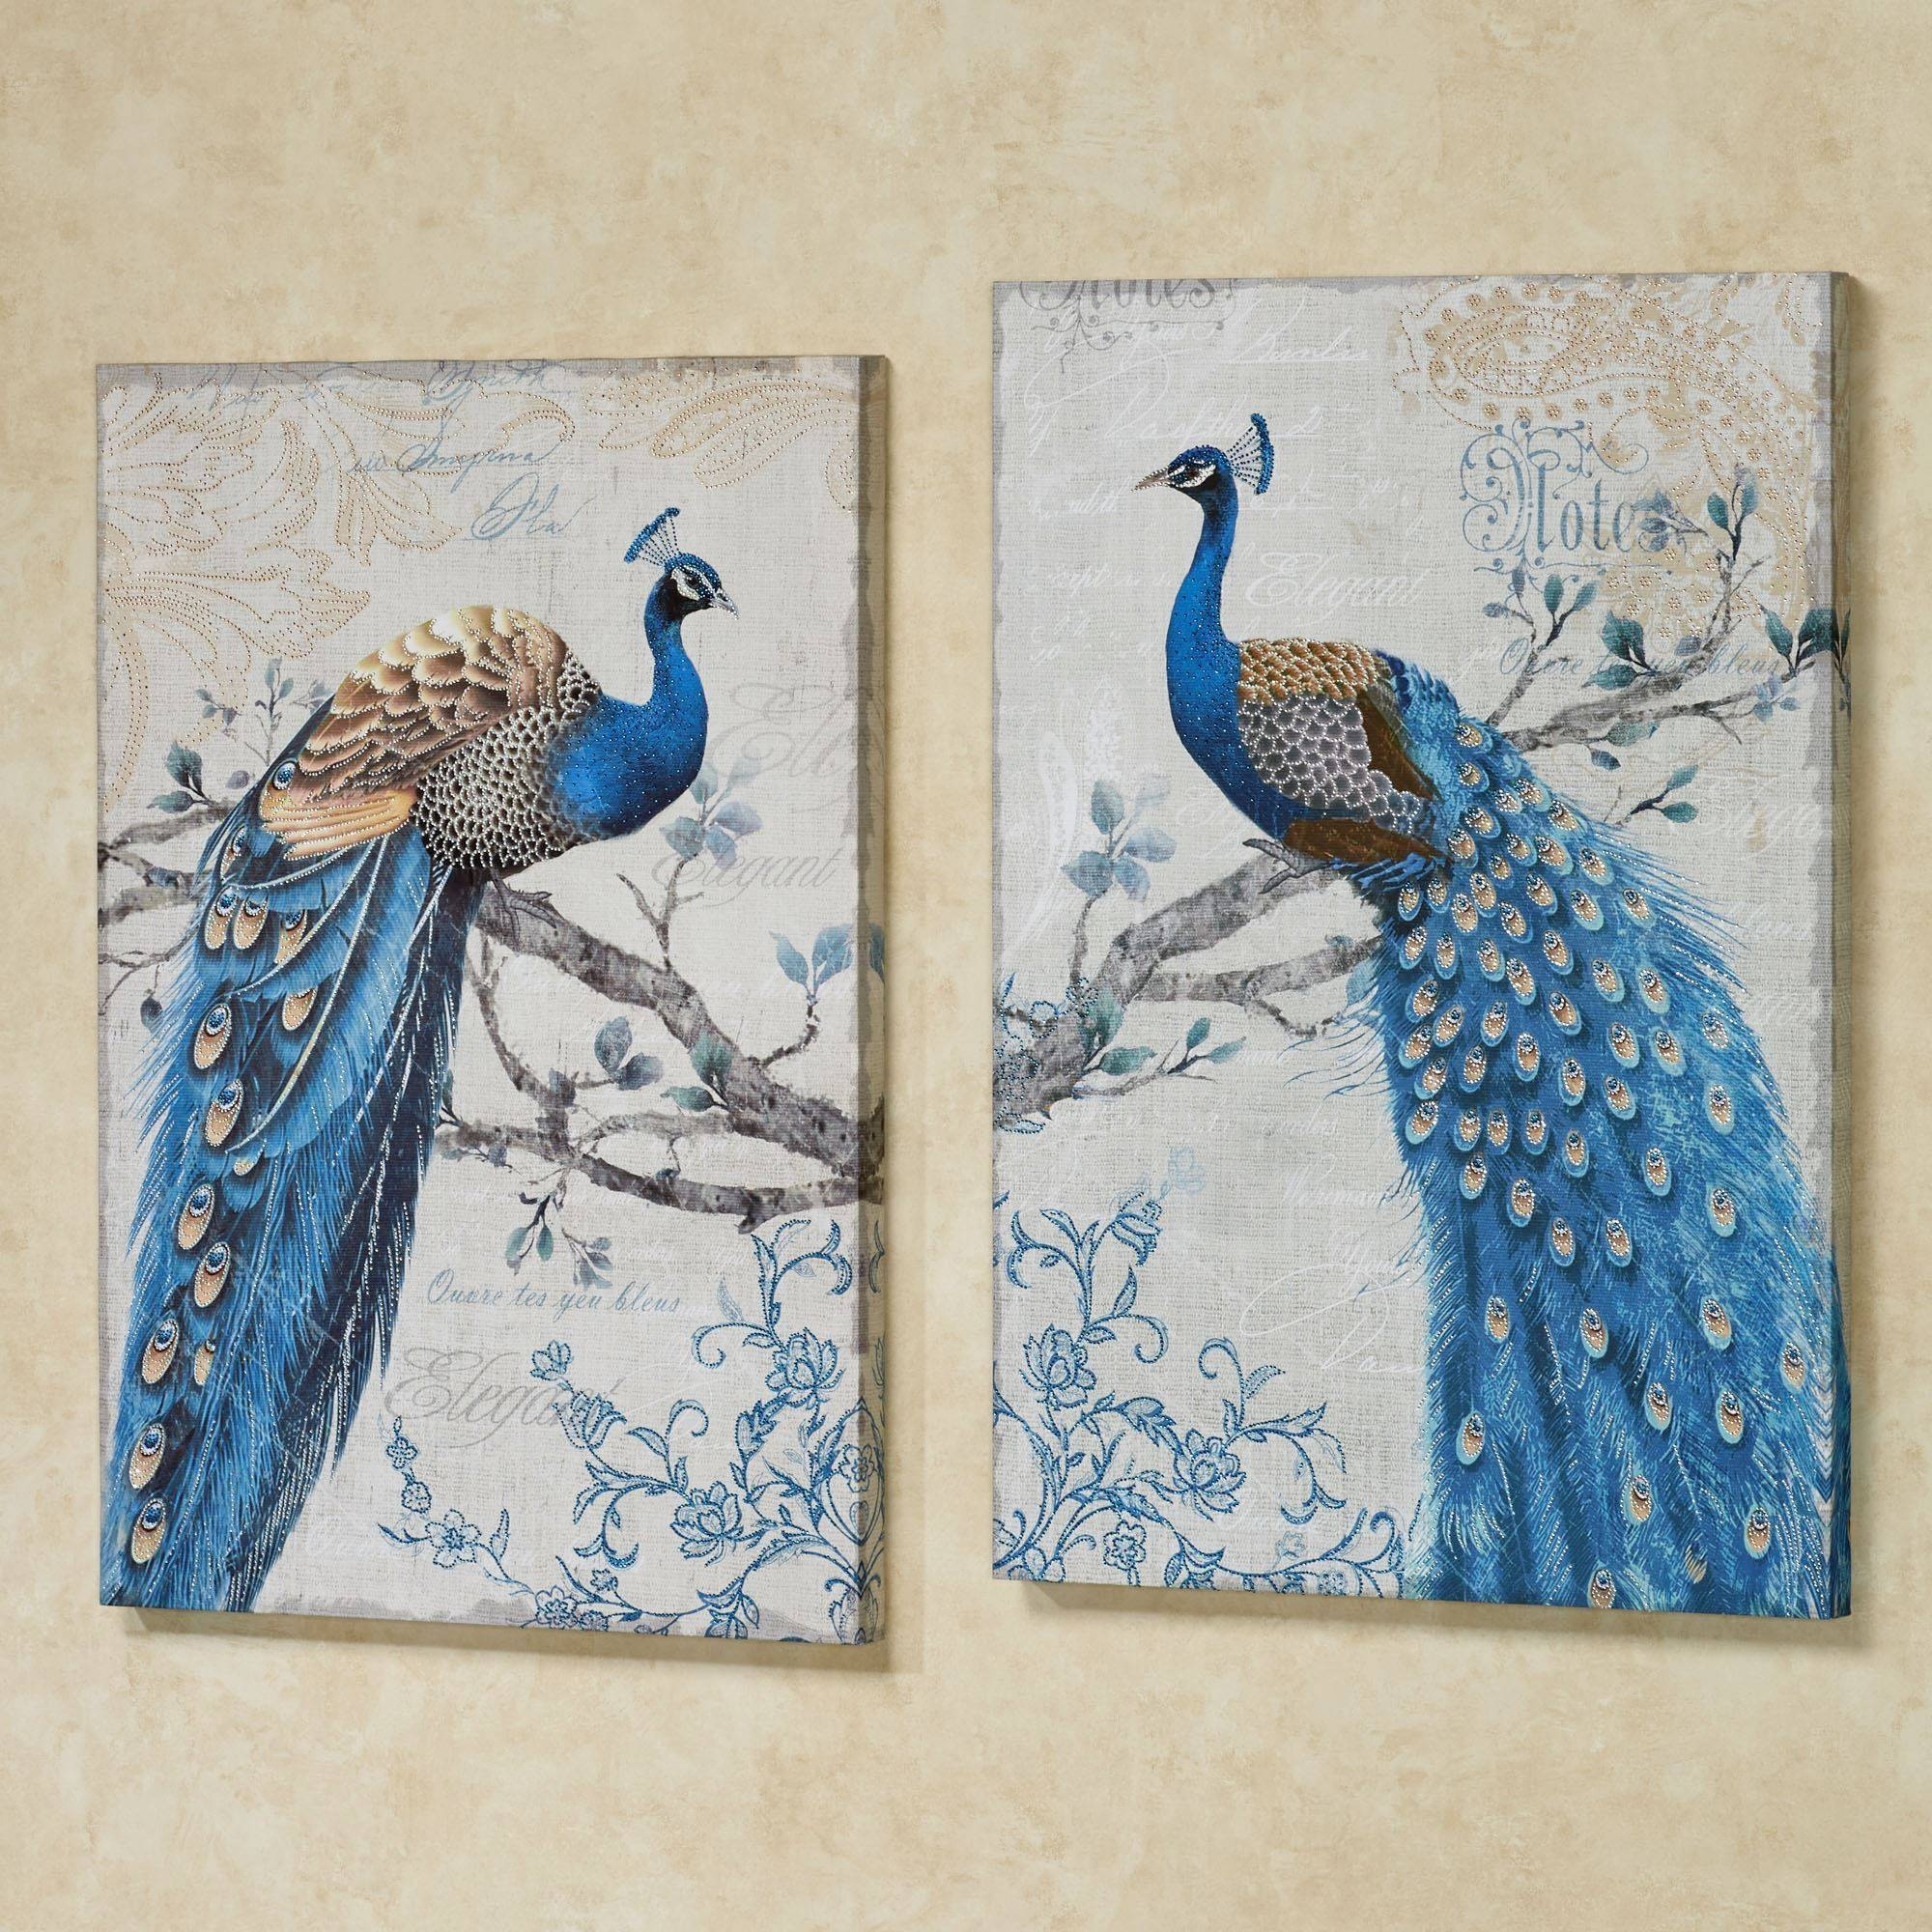 Magnificent Peacock Giclee Canvas Wall Art Set Intended For Most Recently Released Blue And Silver Wall Art (View 20 of 20)